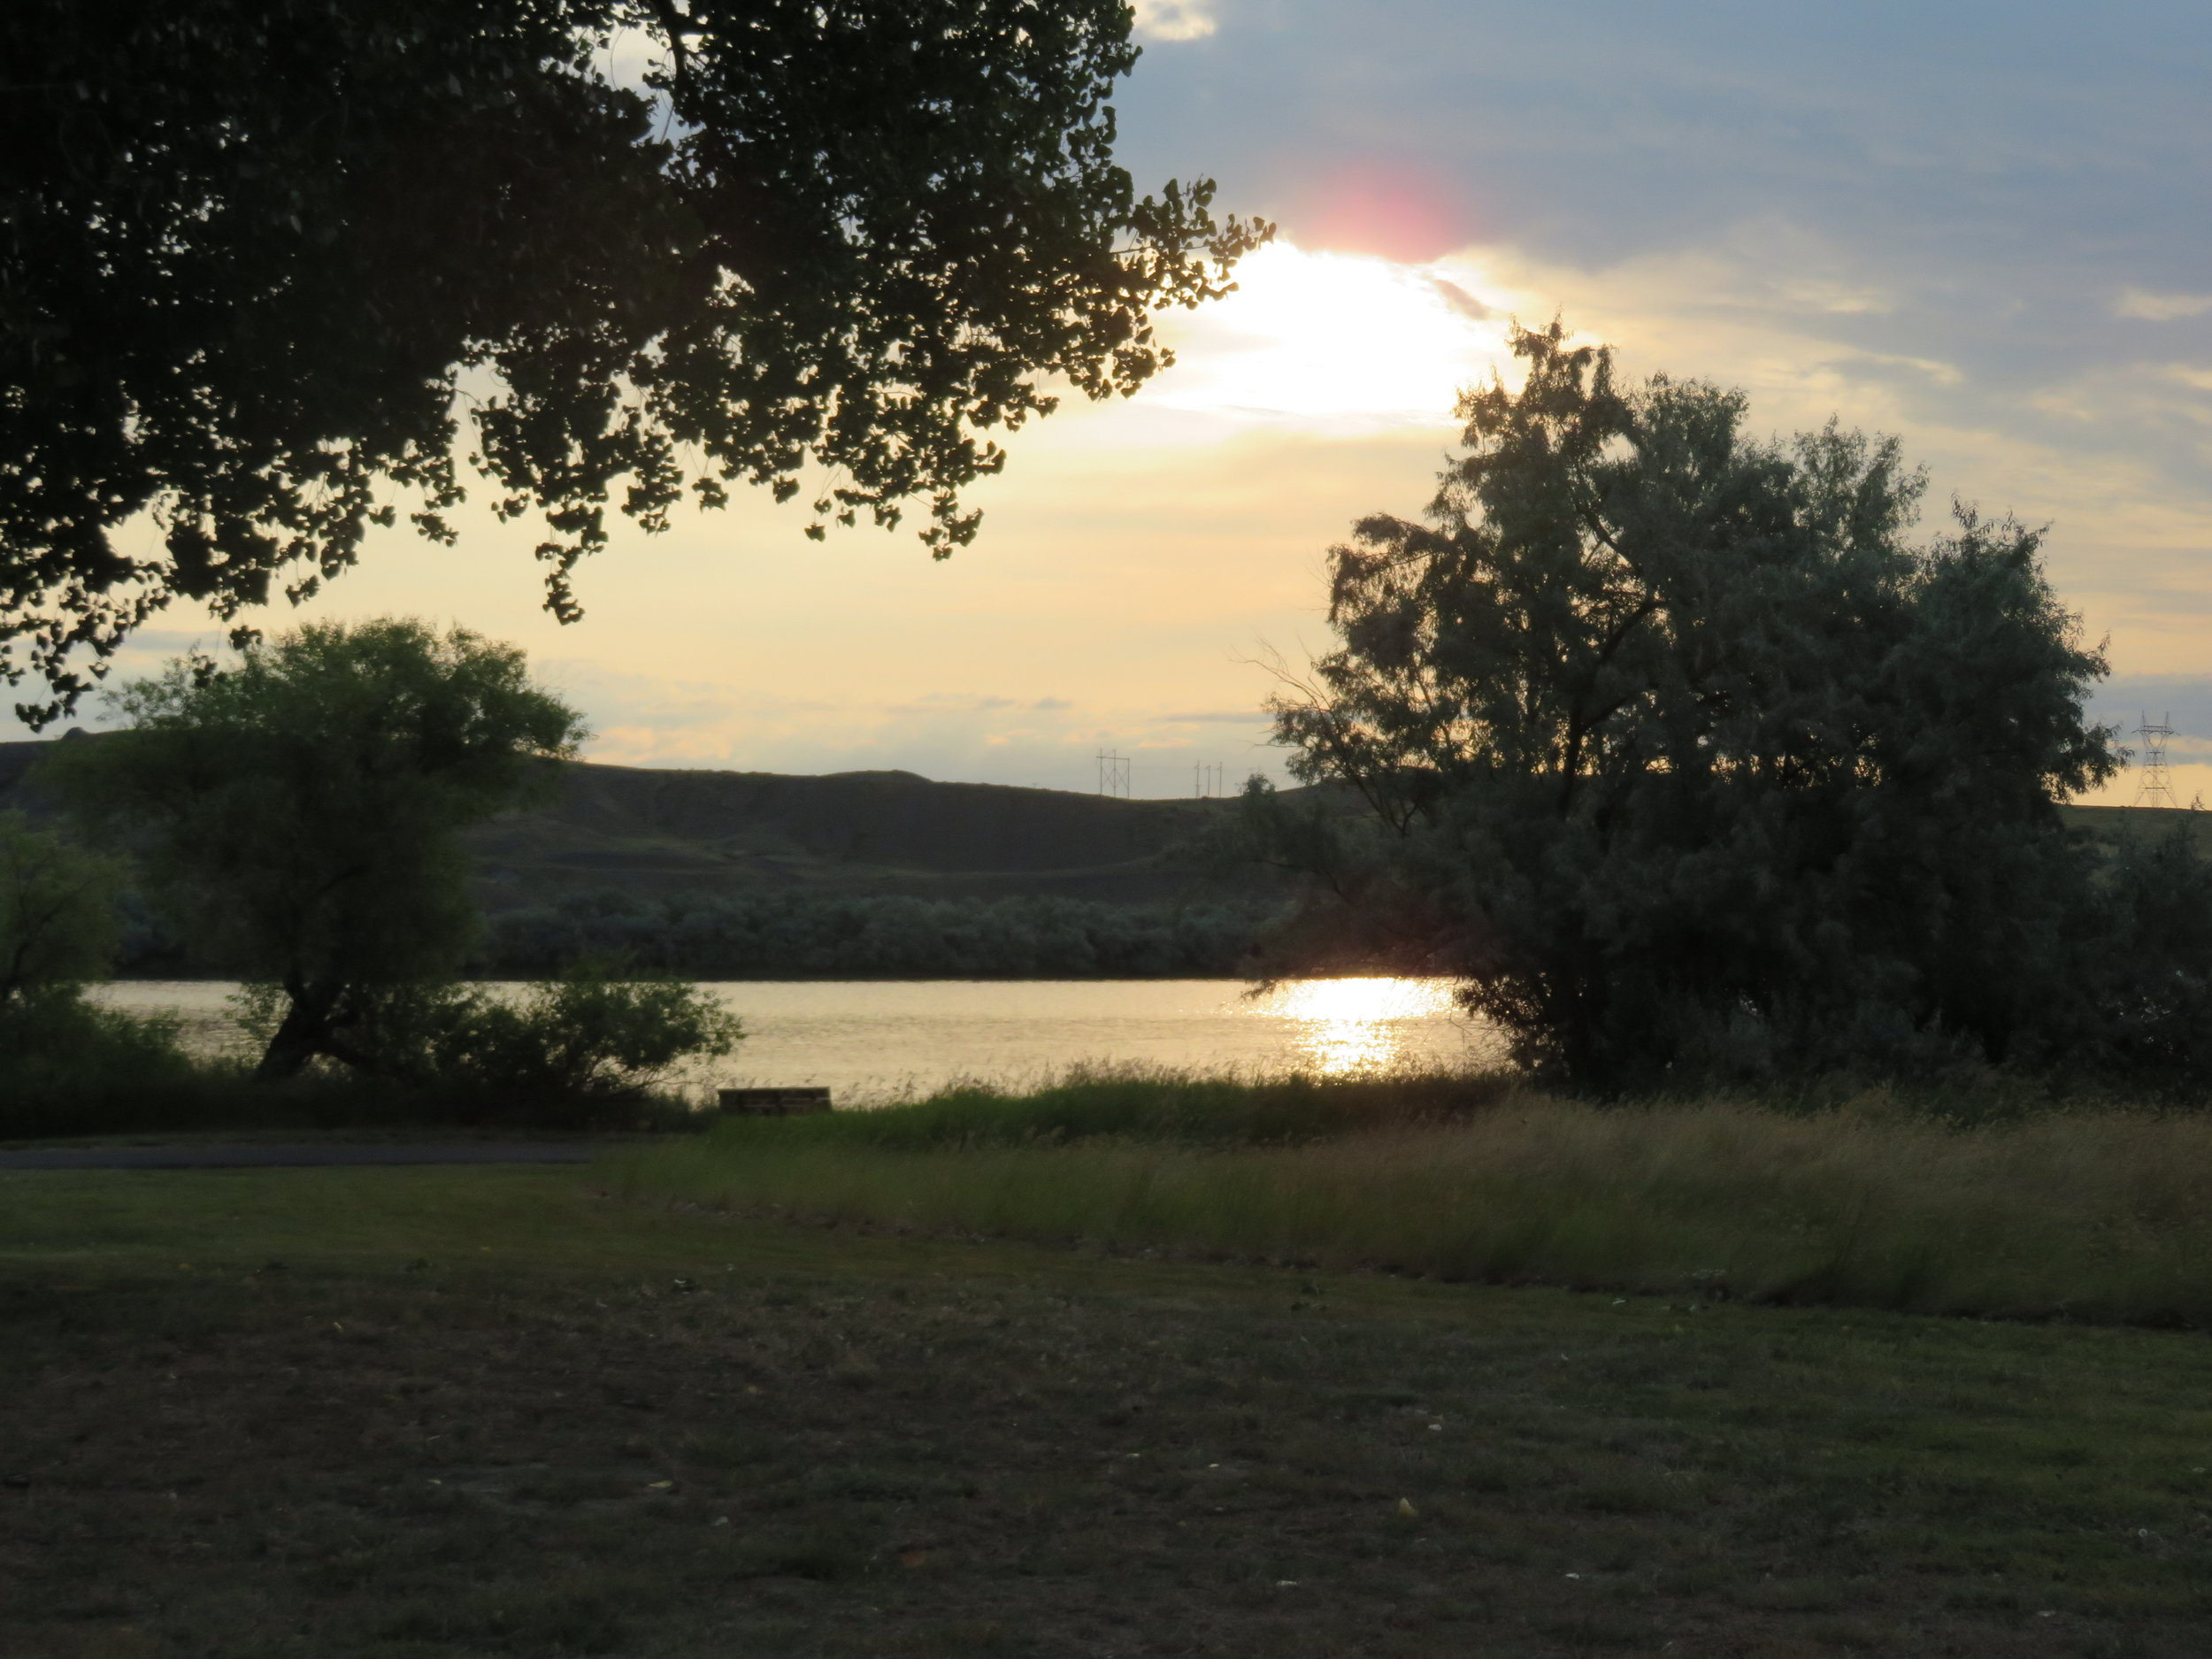 A glorious sunrise on the Missouri River more than made up for the grumpy hostess.